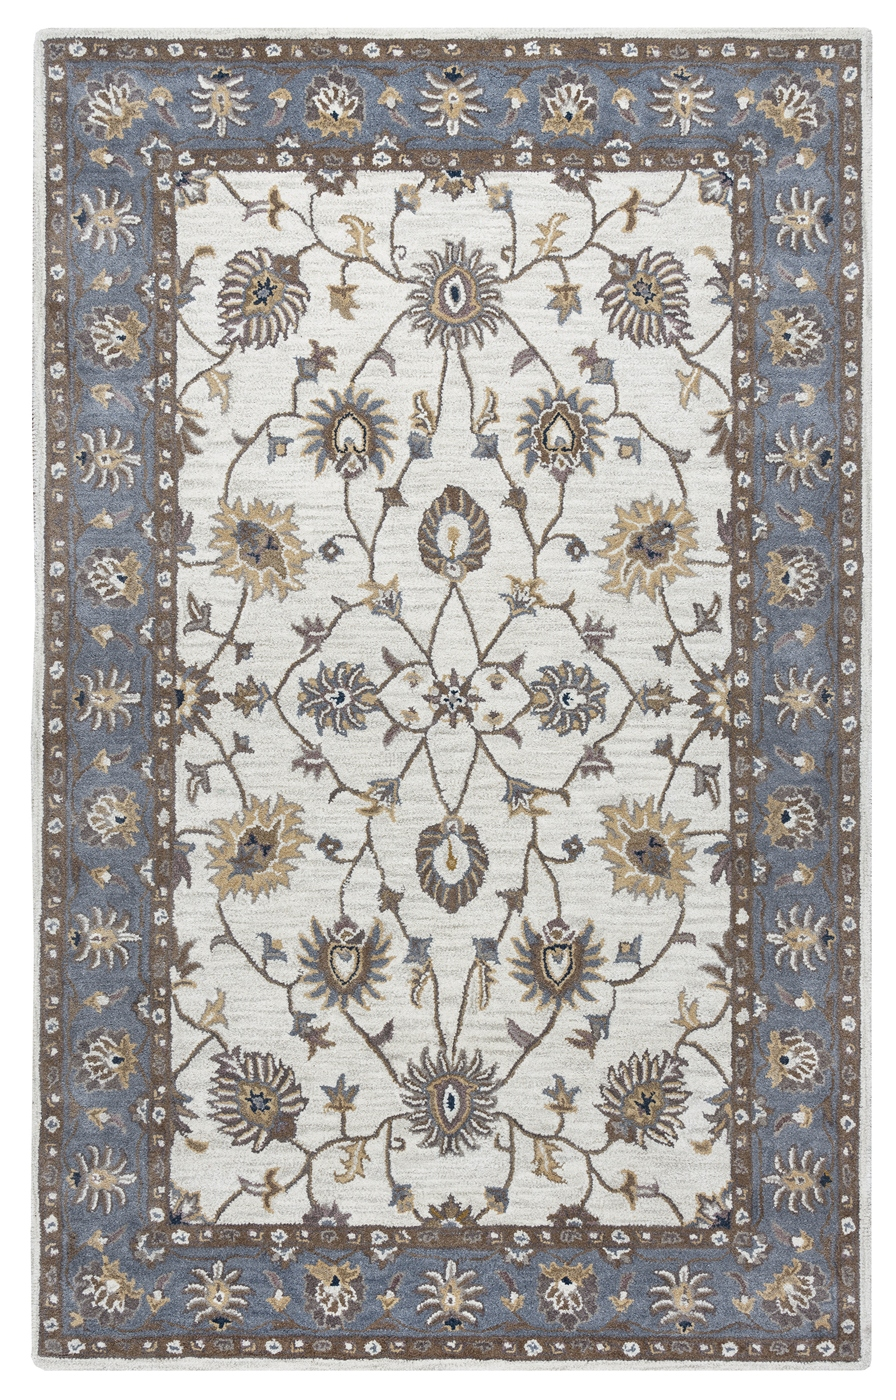 Valintino Floral Vine Border Wool Area Rug In Taupe Blue